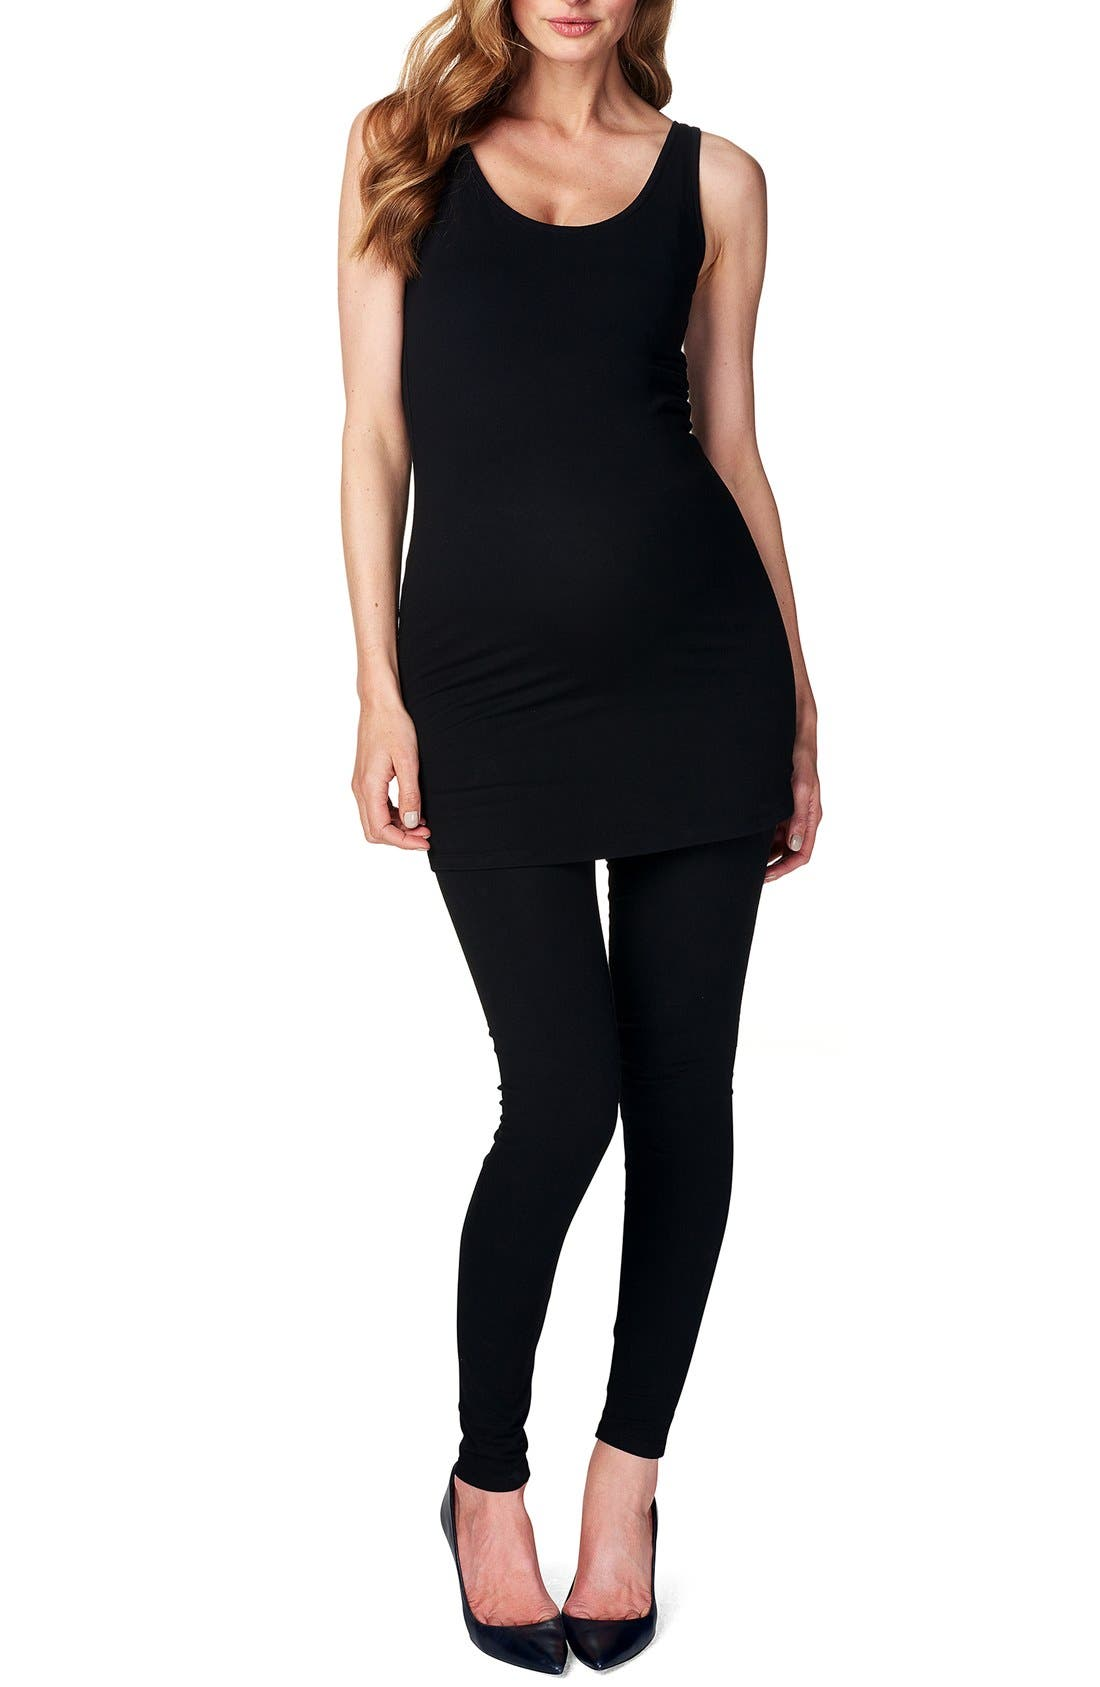 Alternate Image 1 Selected - Noppies 'Amsterdam' Scoop Neck Long Maternity Top